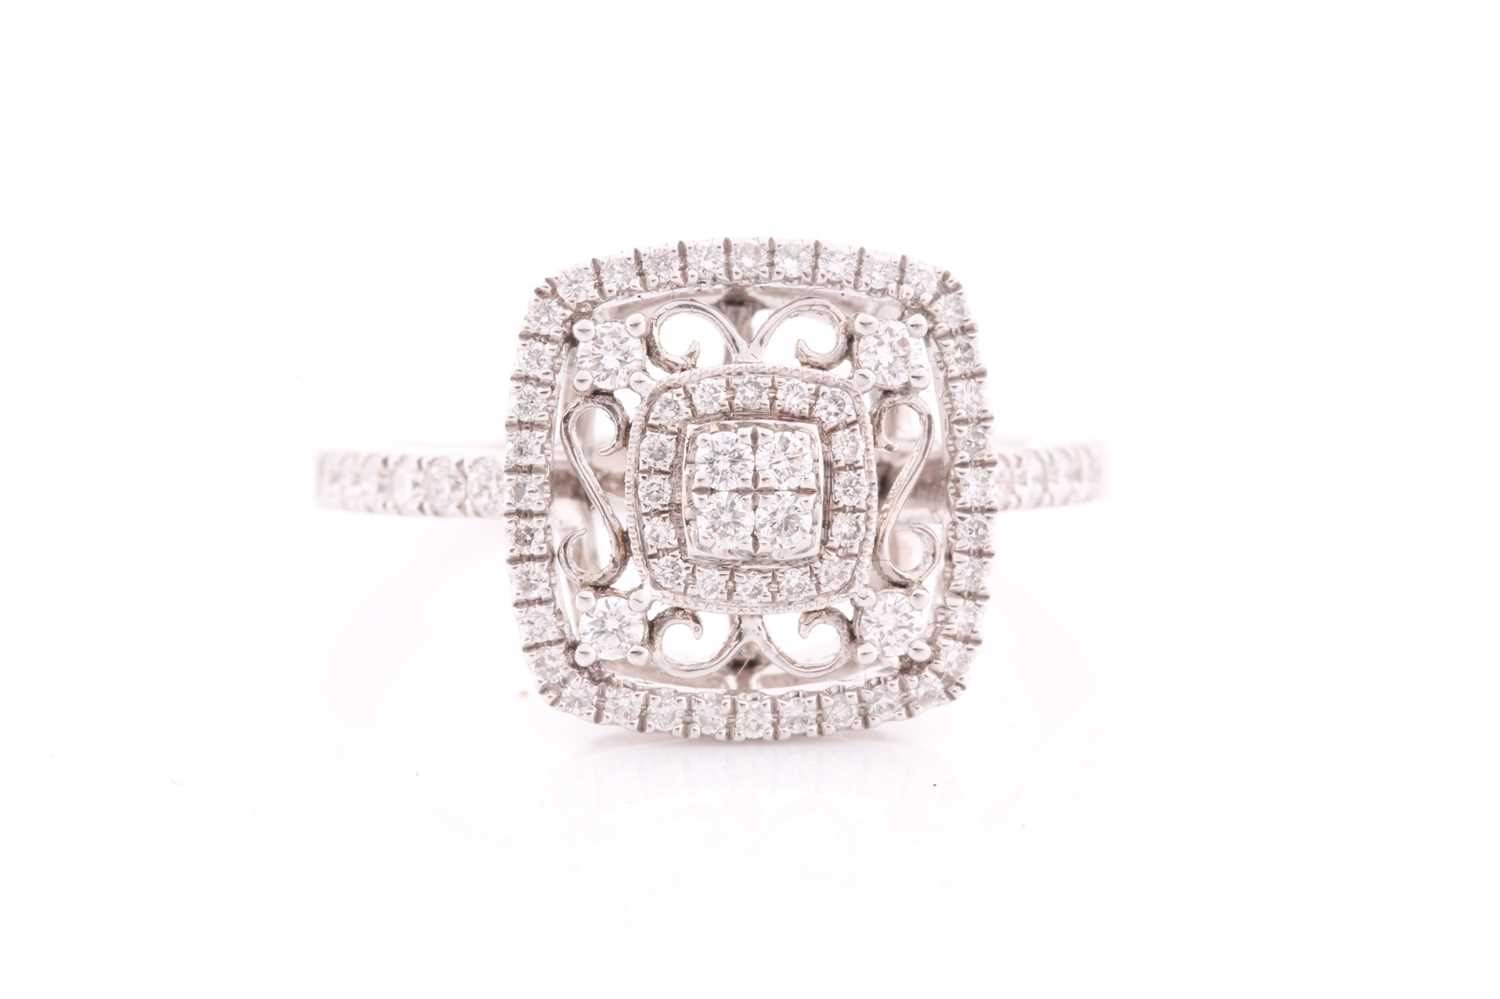 An 18ct white gold and diamond ring, the openwork mount with filigree style decoration, inset with